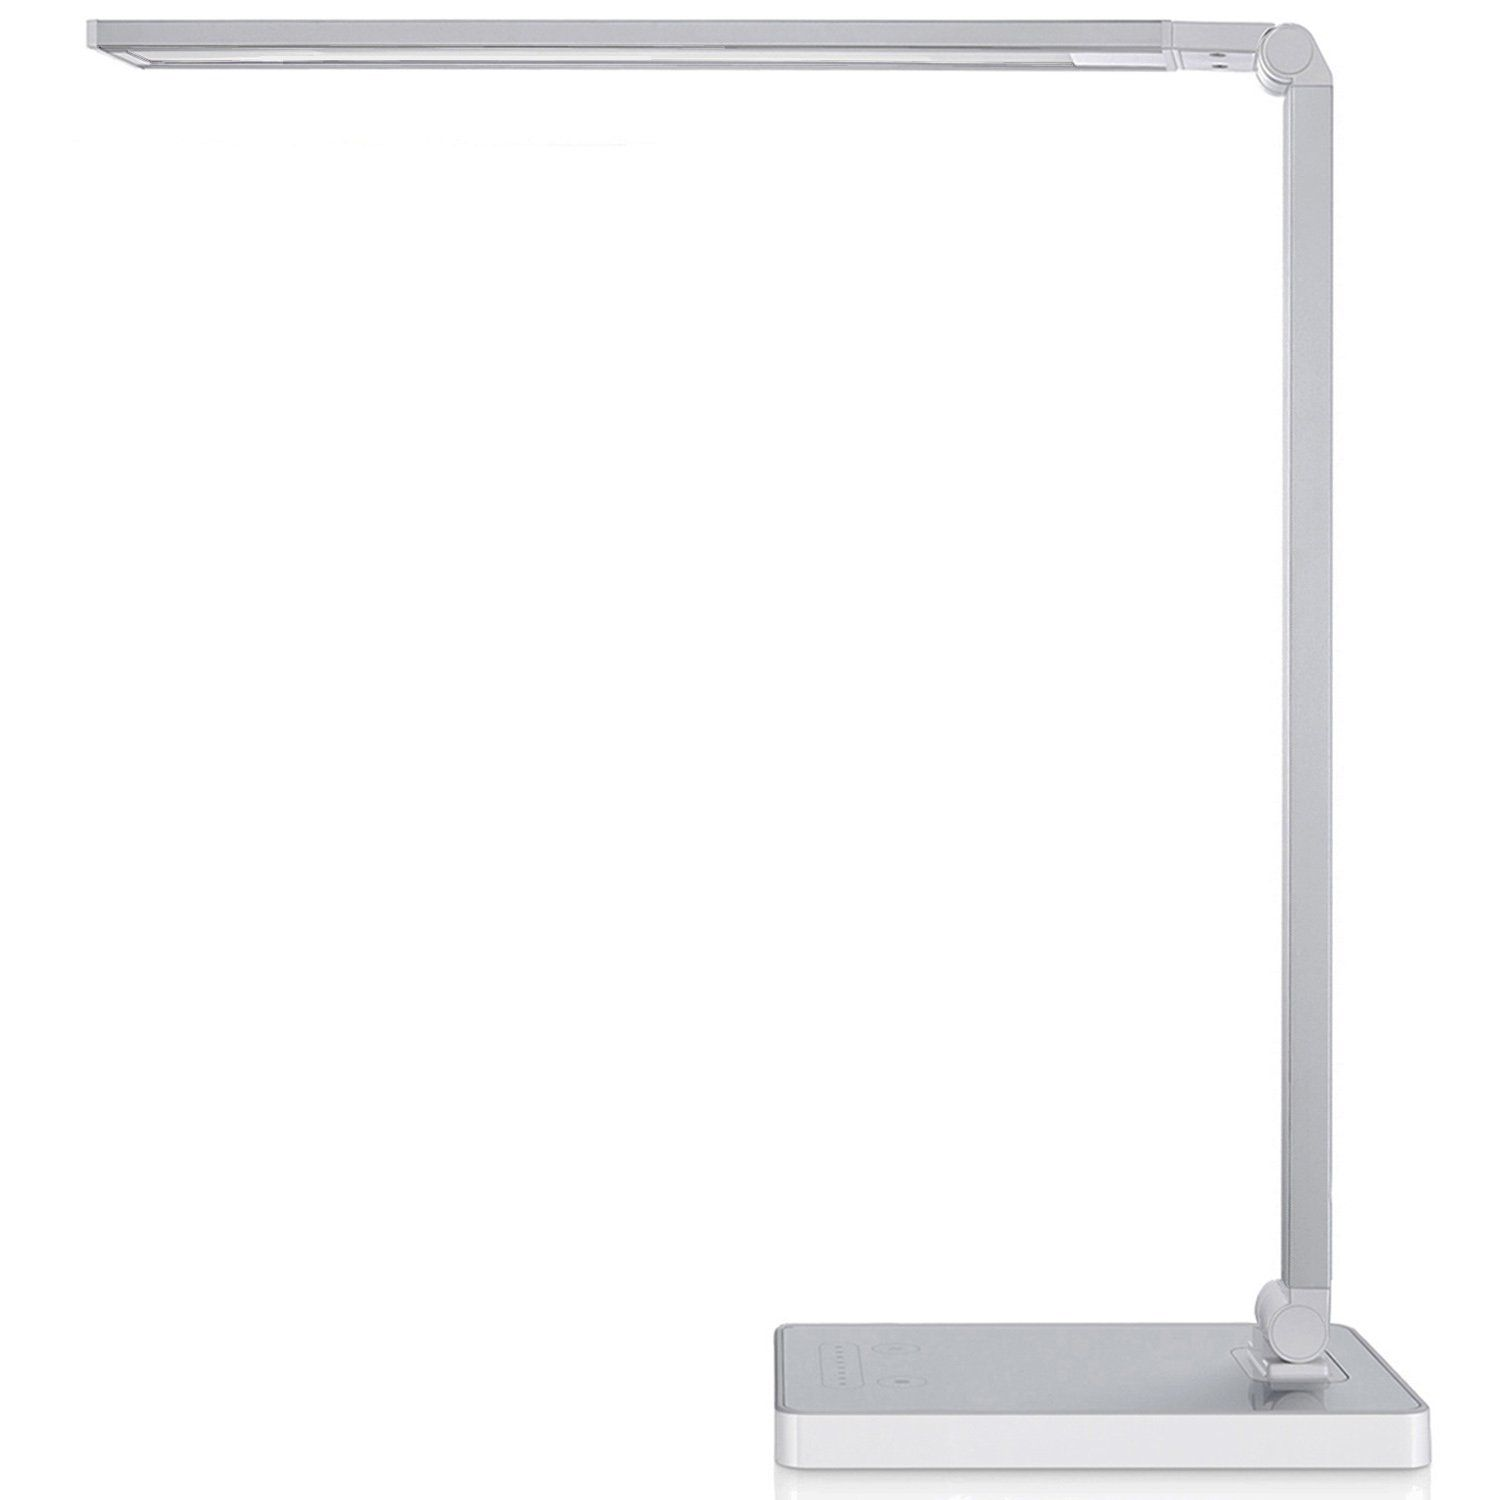 Phive Dimmable LED Desk Lamp with Fast Charging USB Port